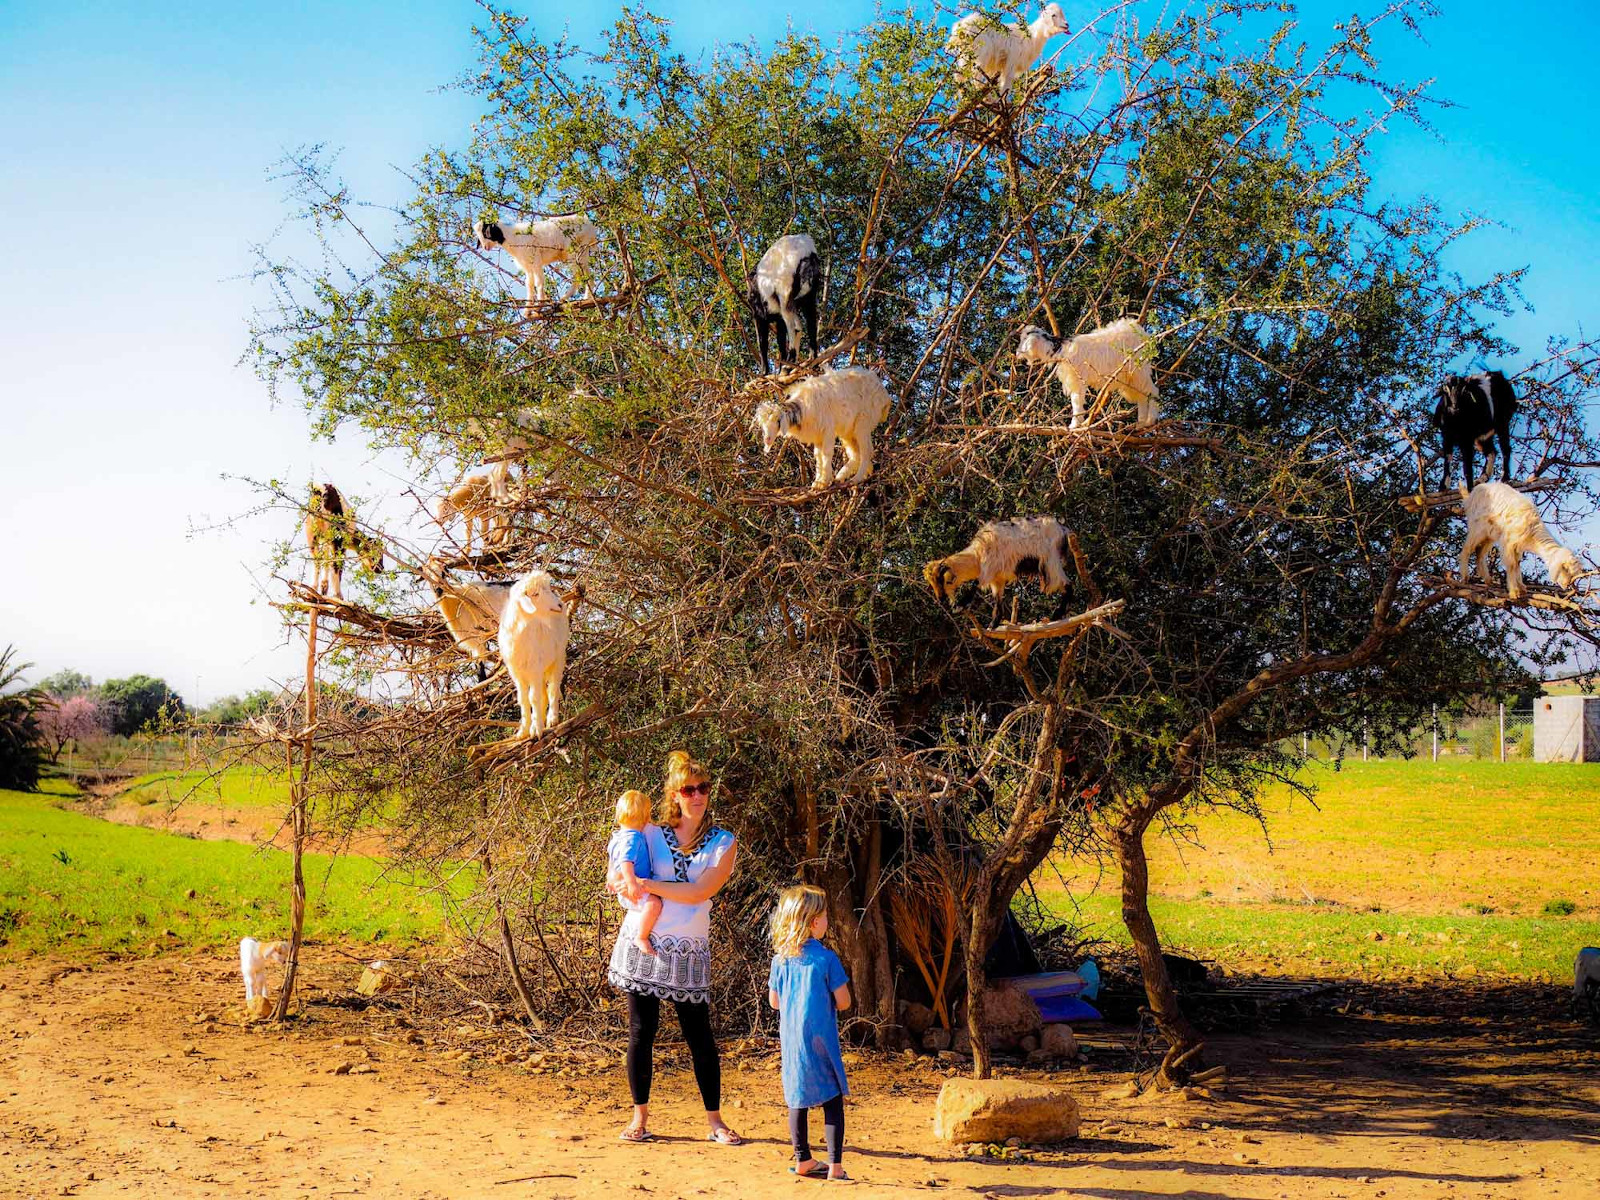 You have to see the goat tree near Essaouira on your Morocco vacation!